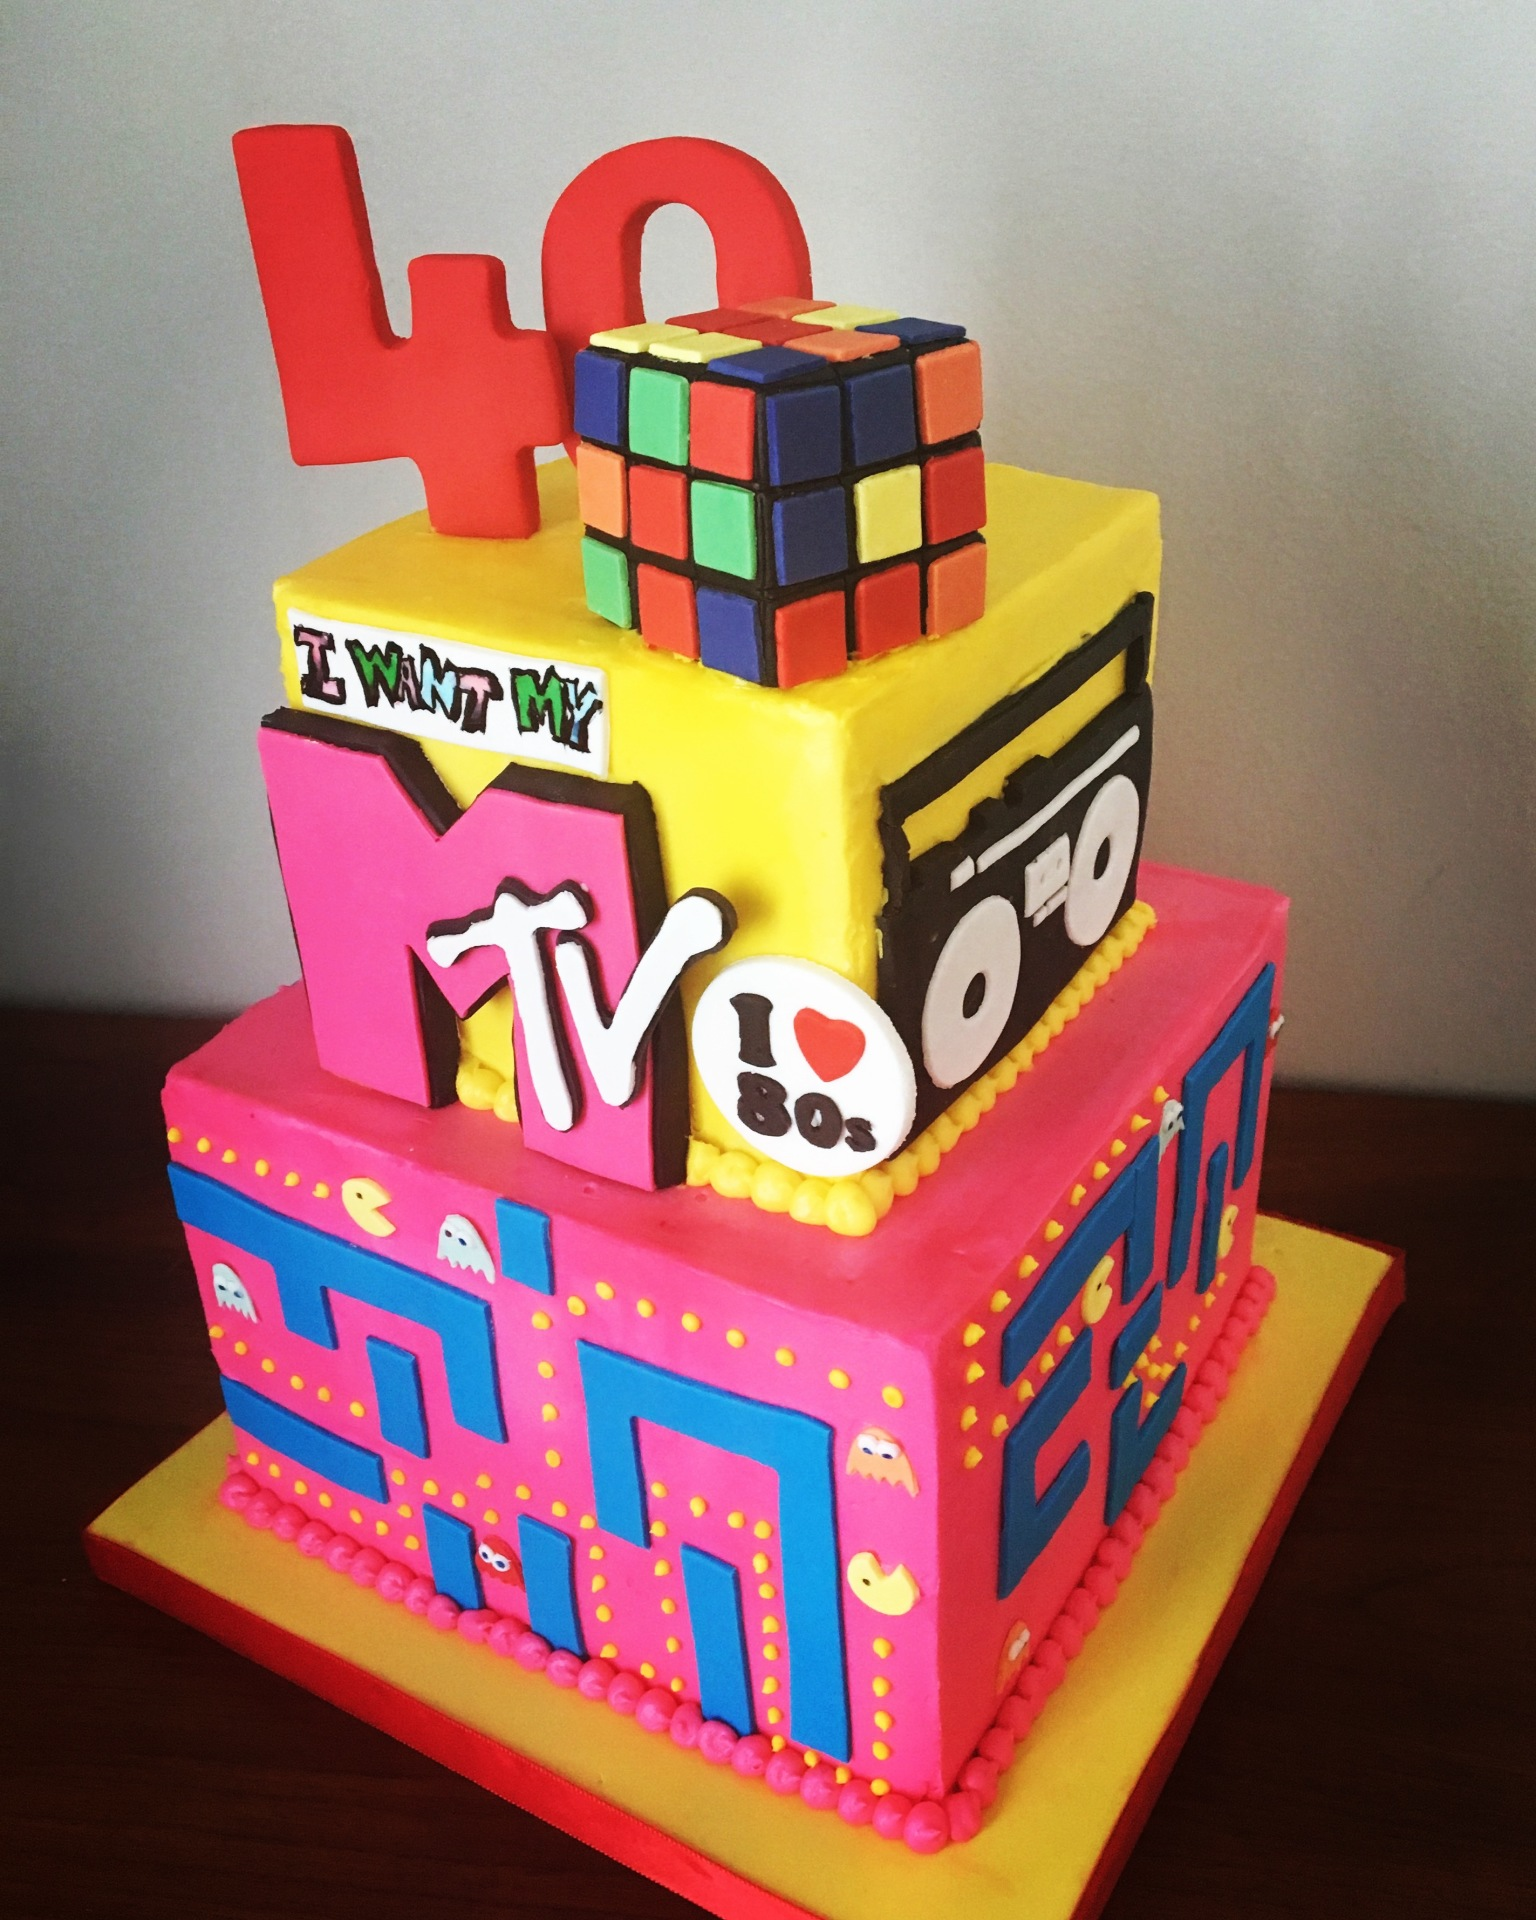 custom cakes nj 1980s themed cake 80s cake colorful MTV